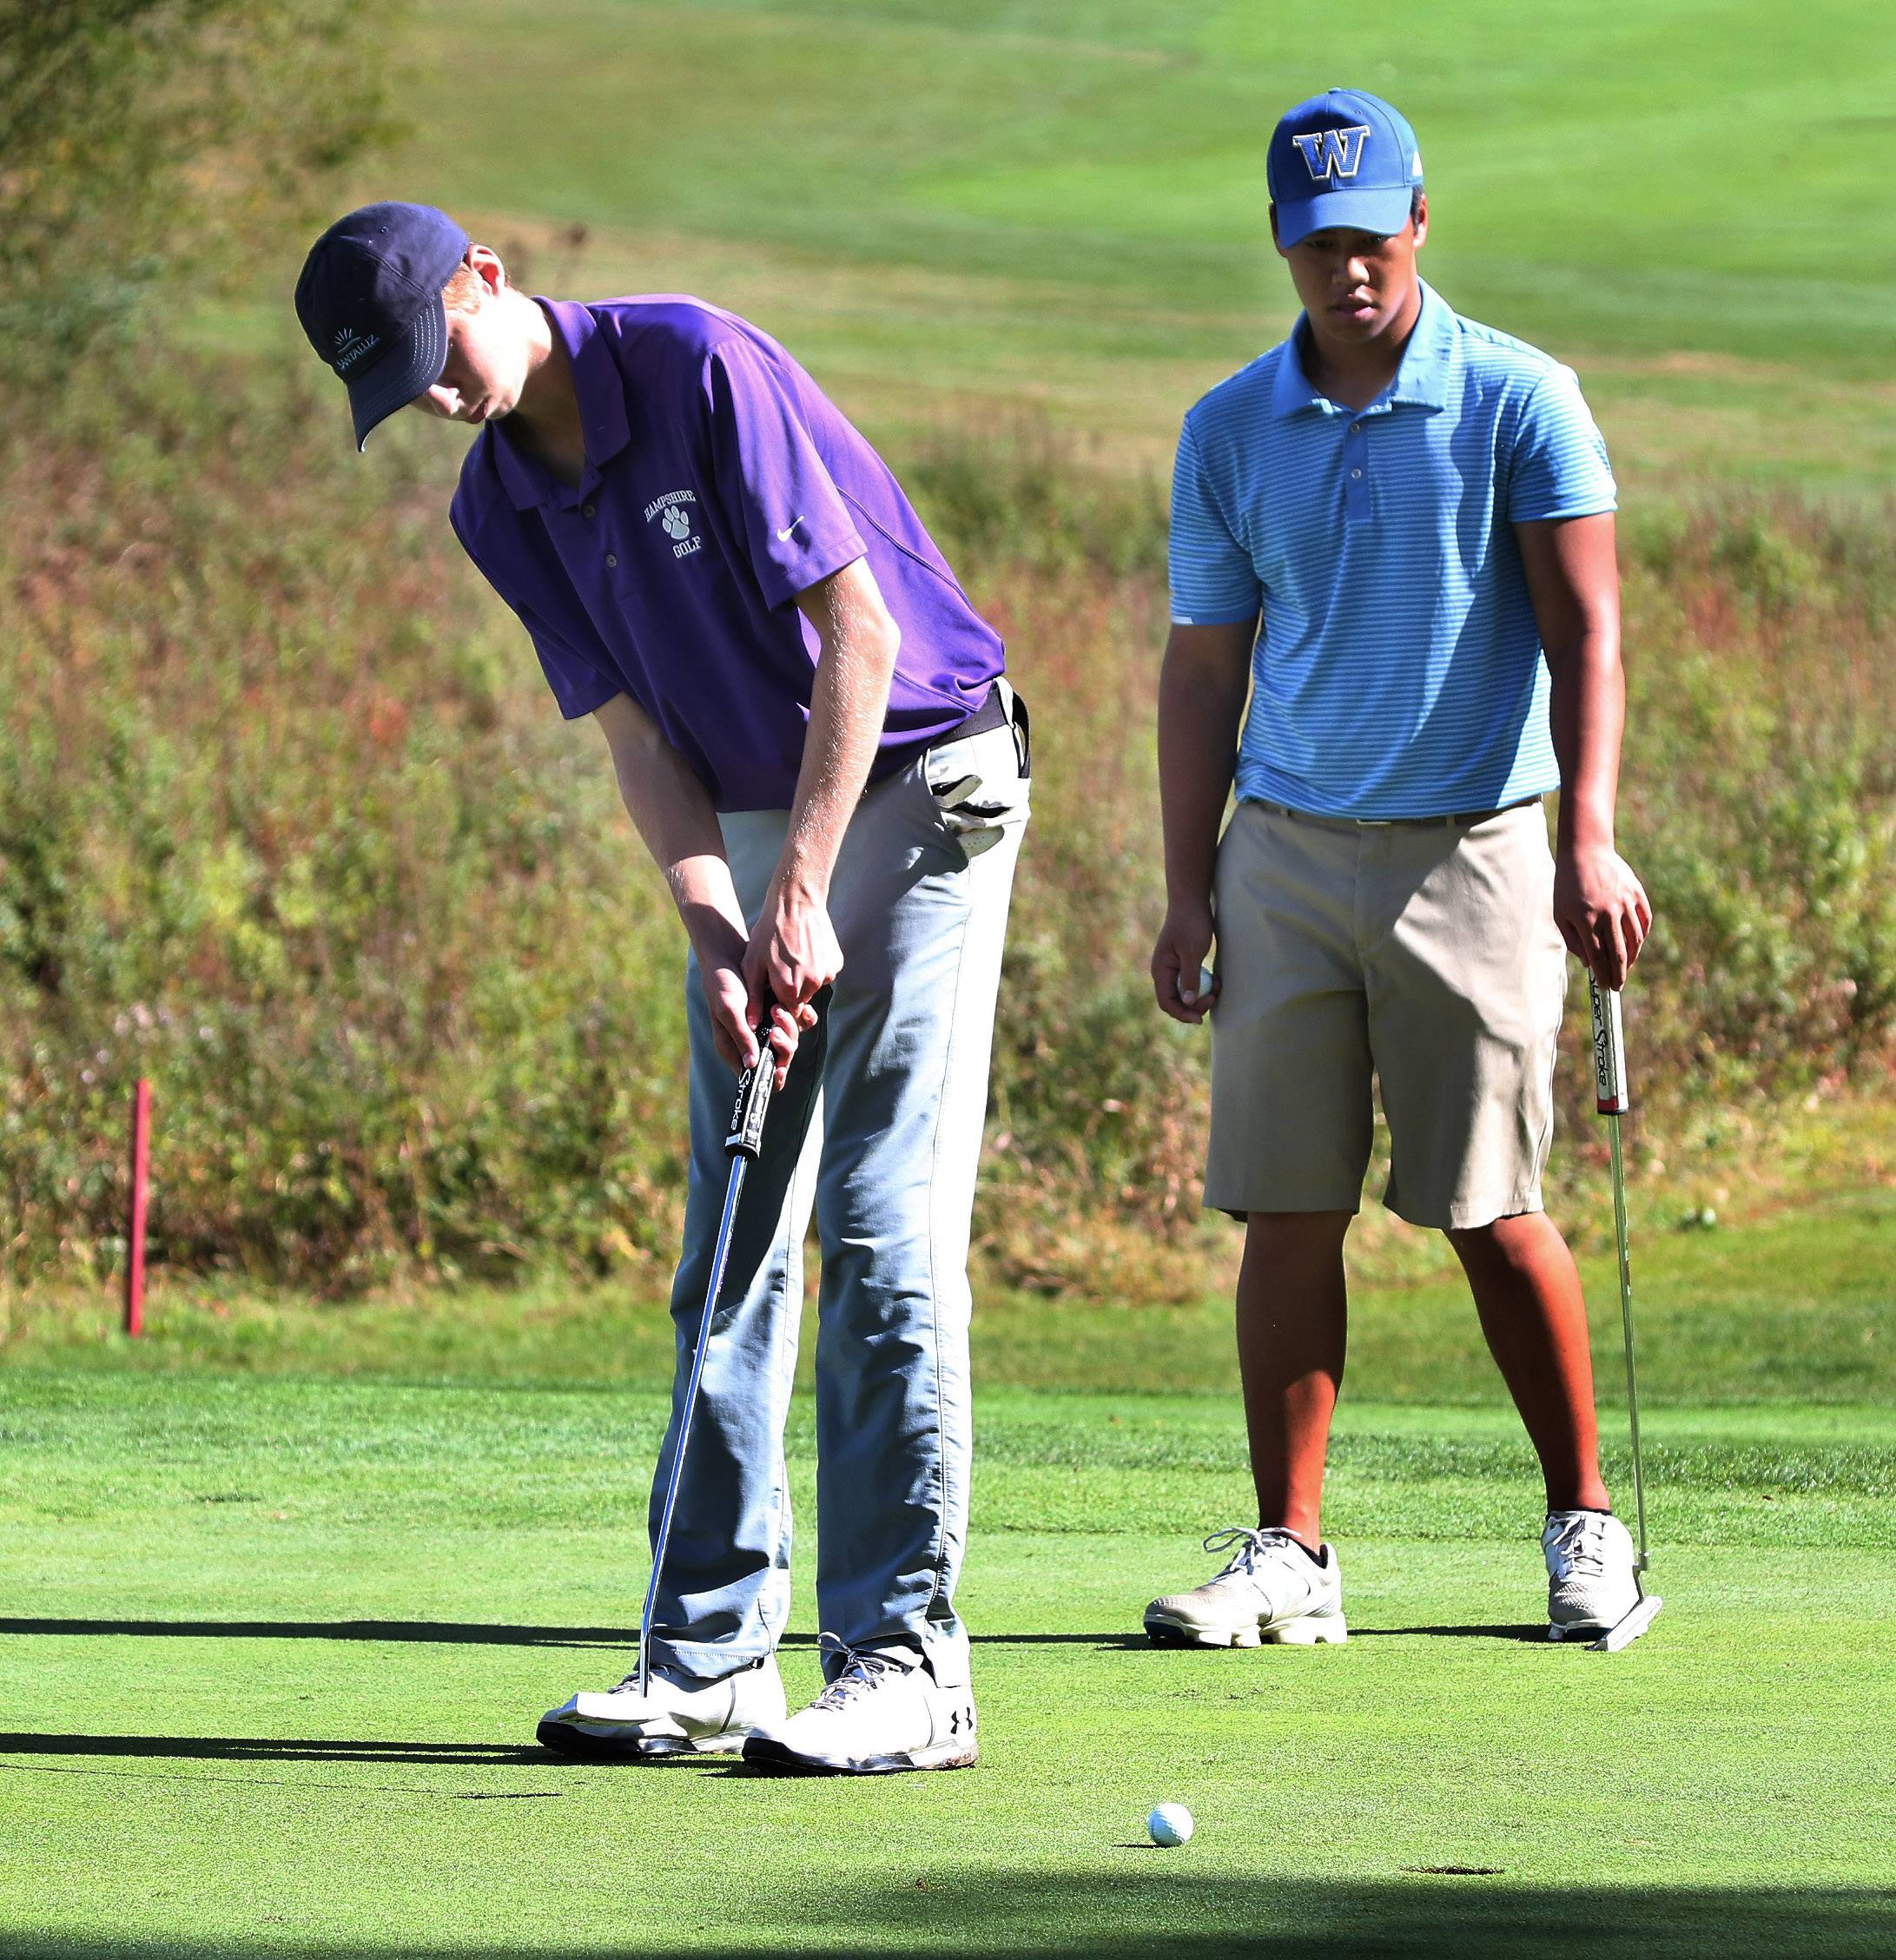 Hampshire's Mark Spitzer putts on the 18th hole as Warren's Karl Tolentino watches during the Class 3A Warren boys golf sectional on Monday at Bittersweet Golf Club in Gurnee.